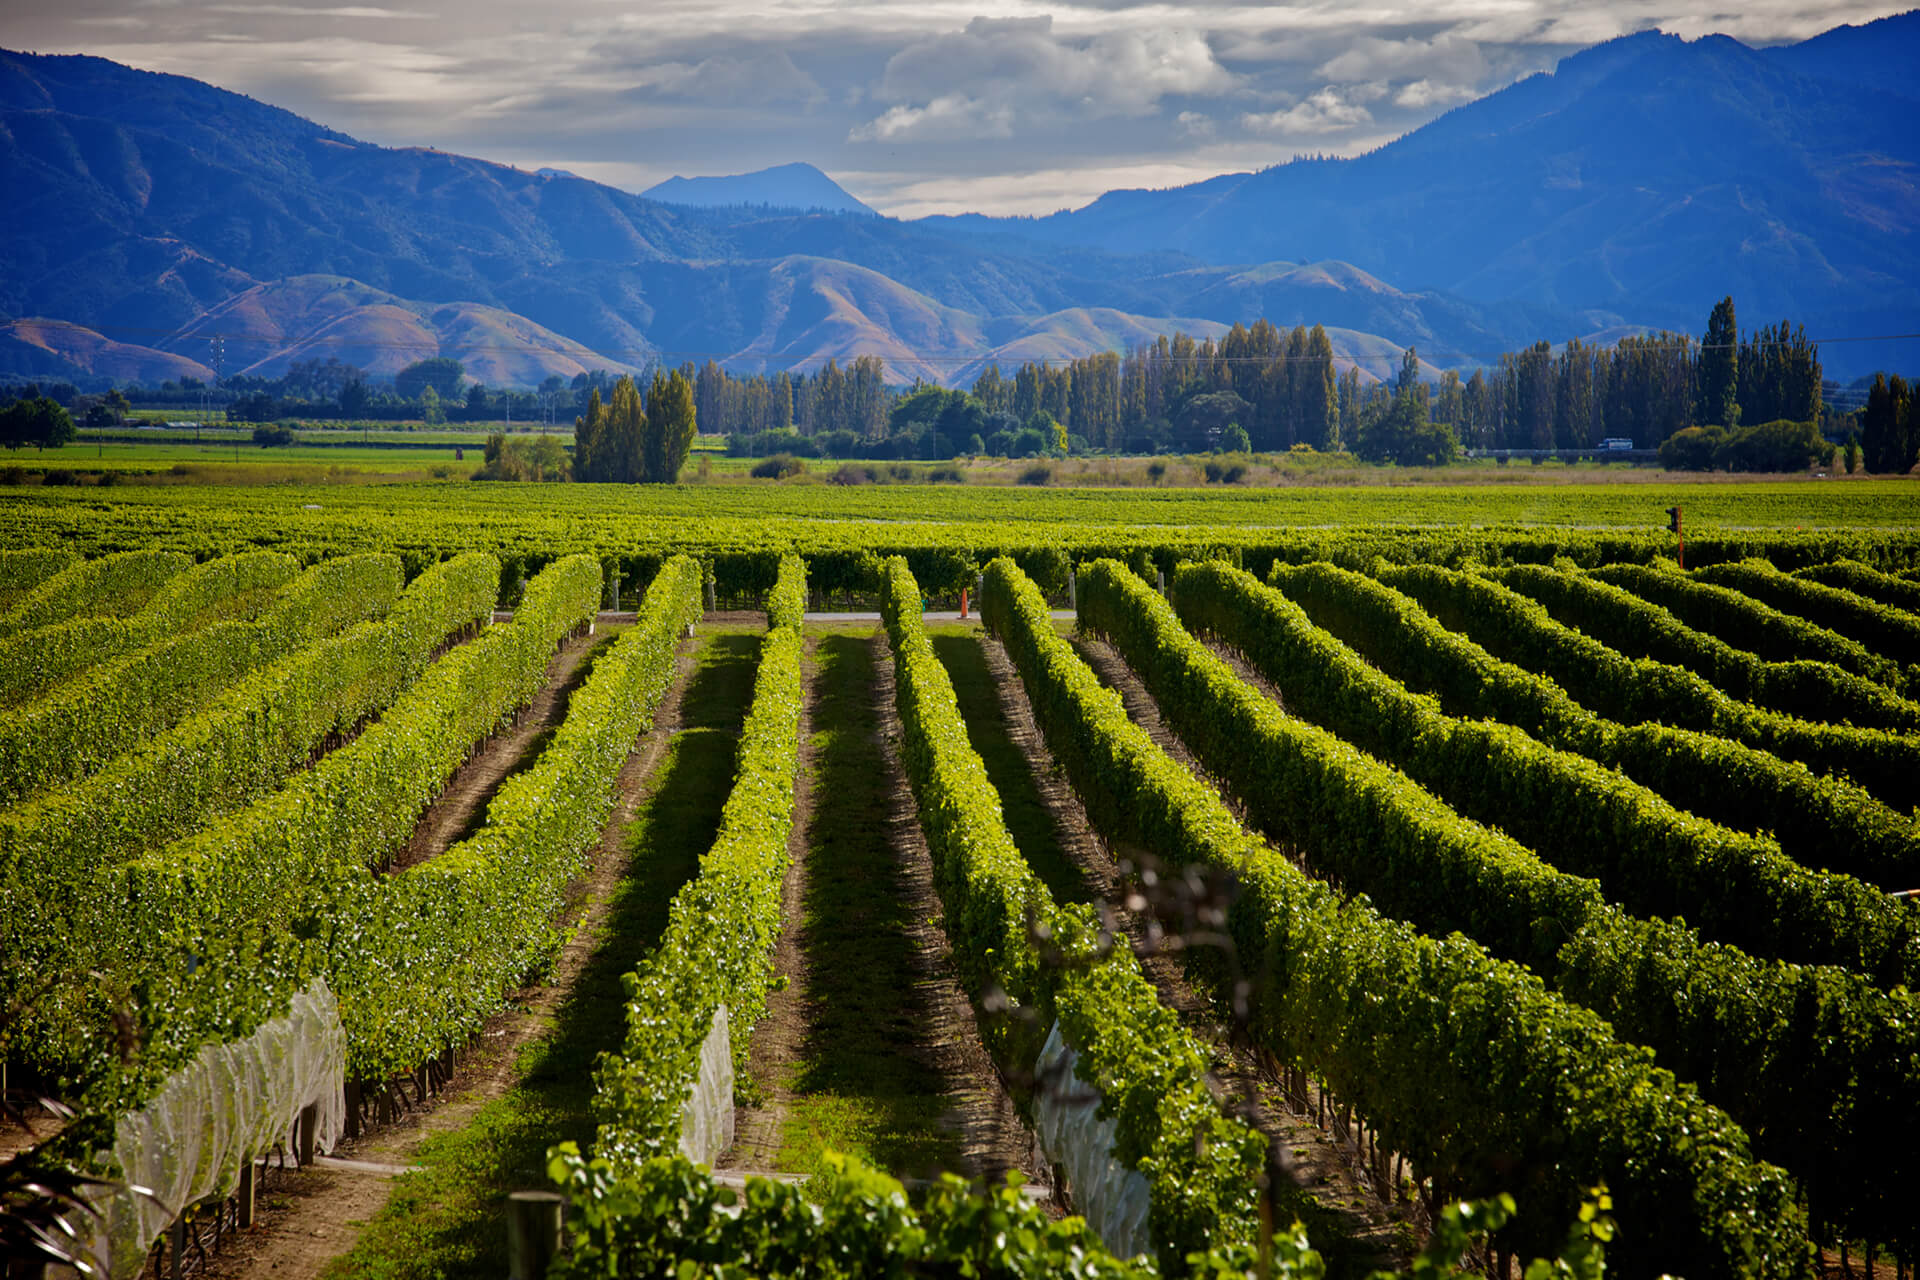 Rows of vineyards perpendicular to camera, mountains in distance